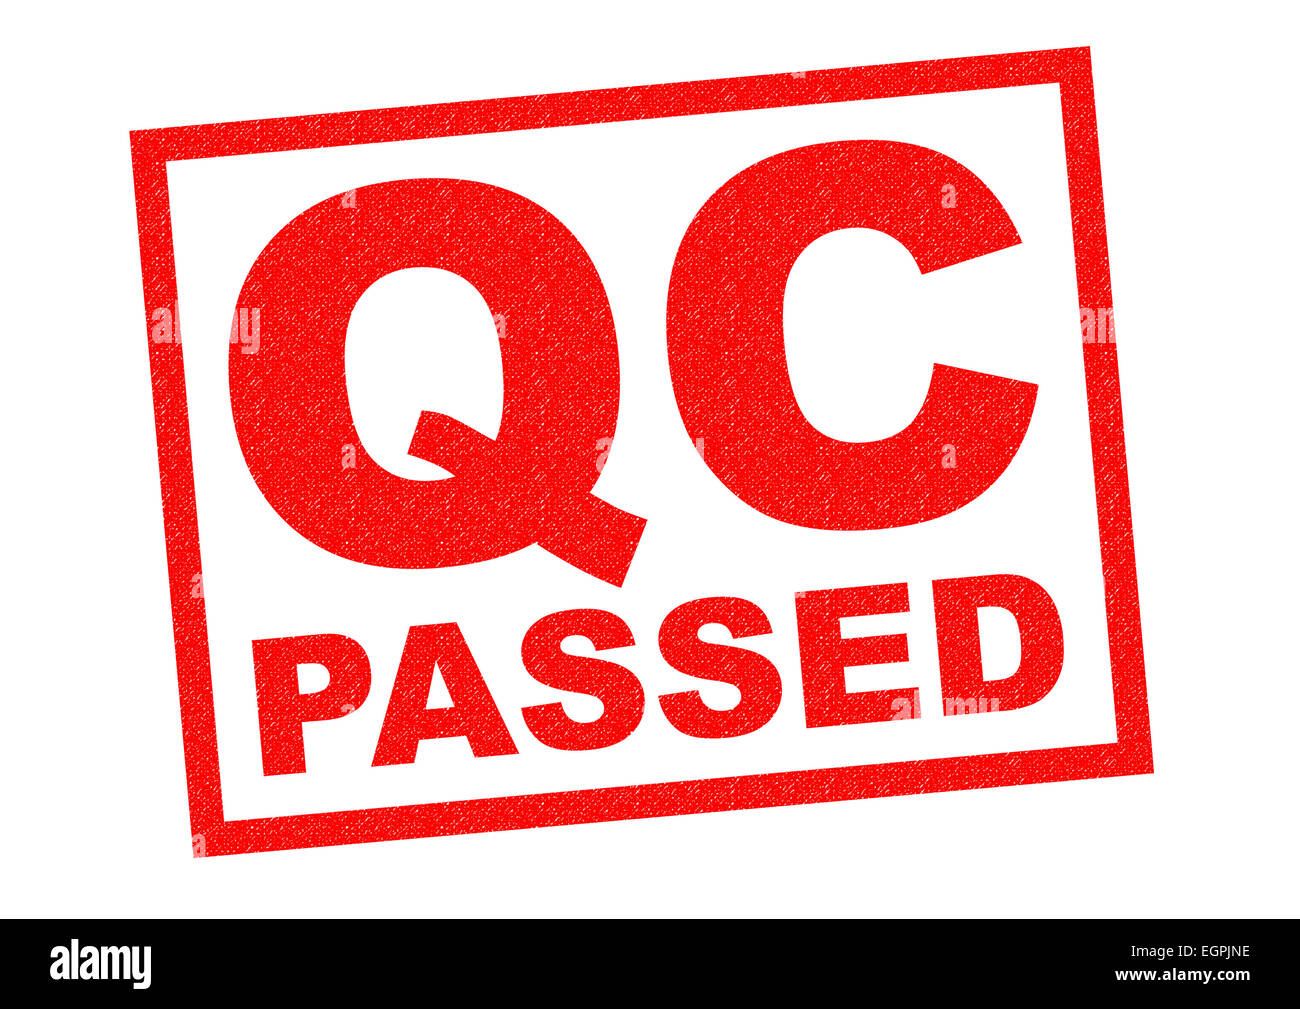 Qc passed red rubber stamp over a white background stock image